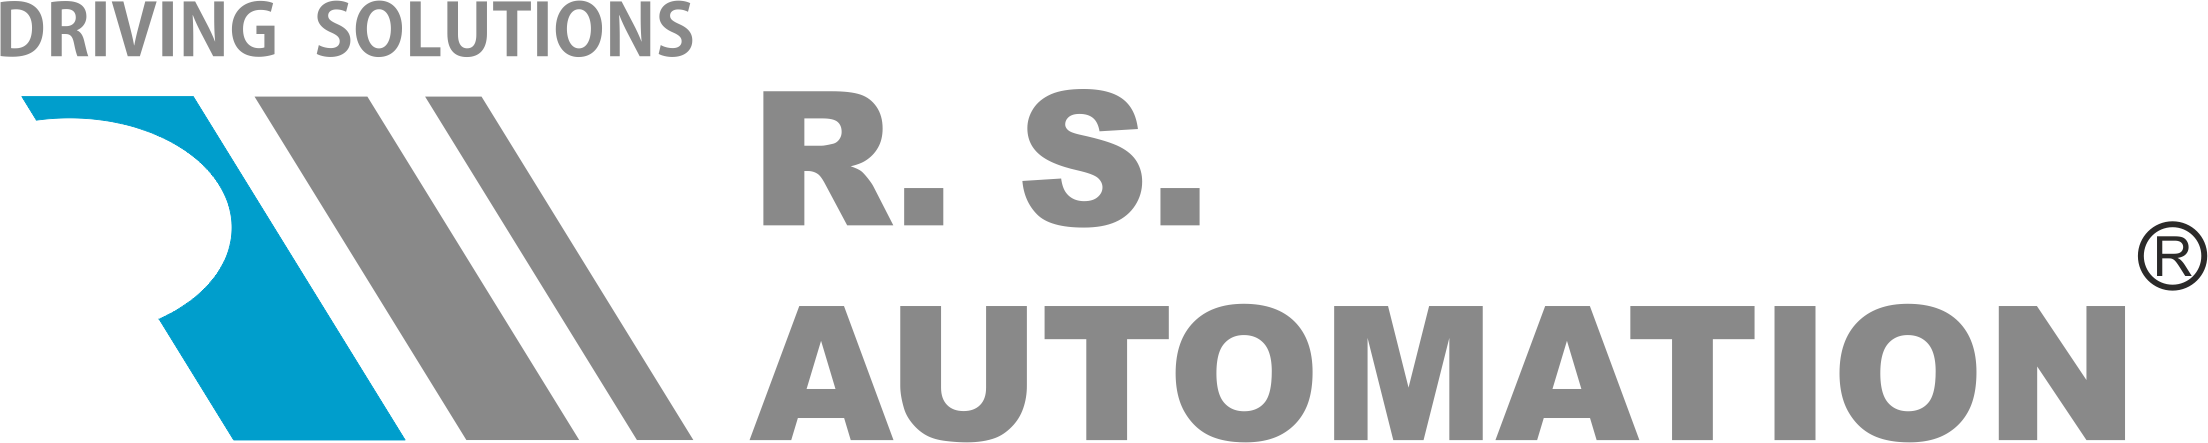 R S Automation